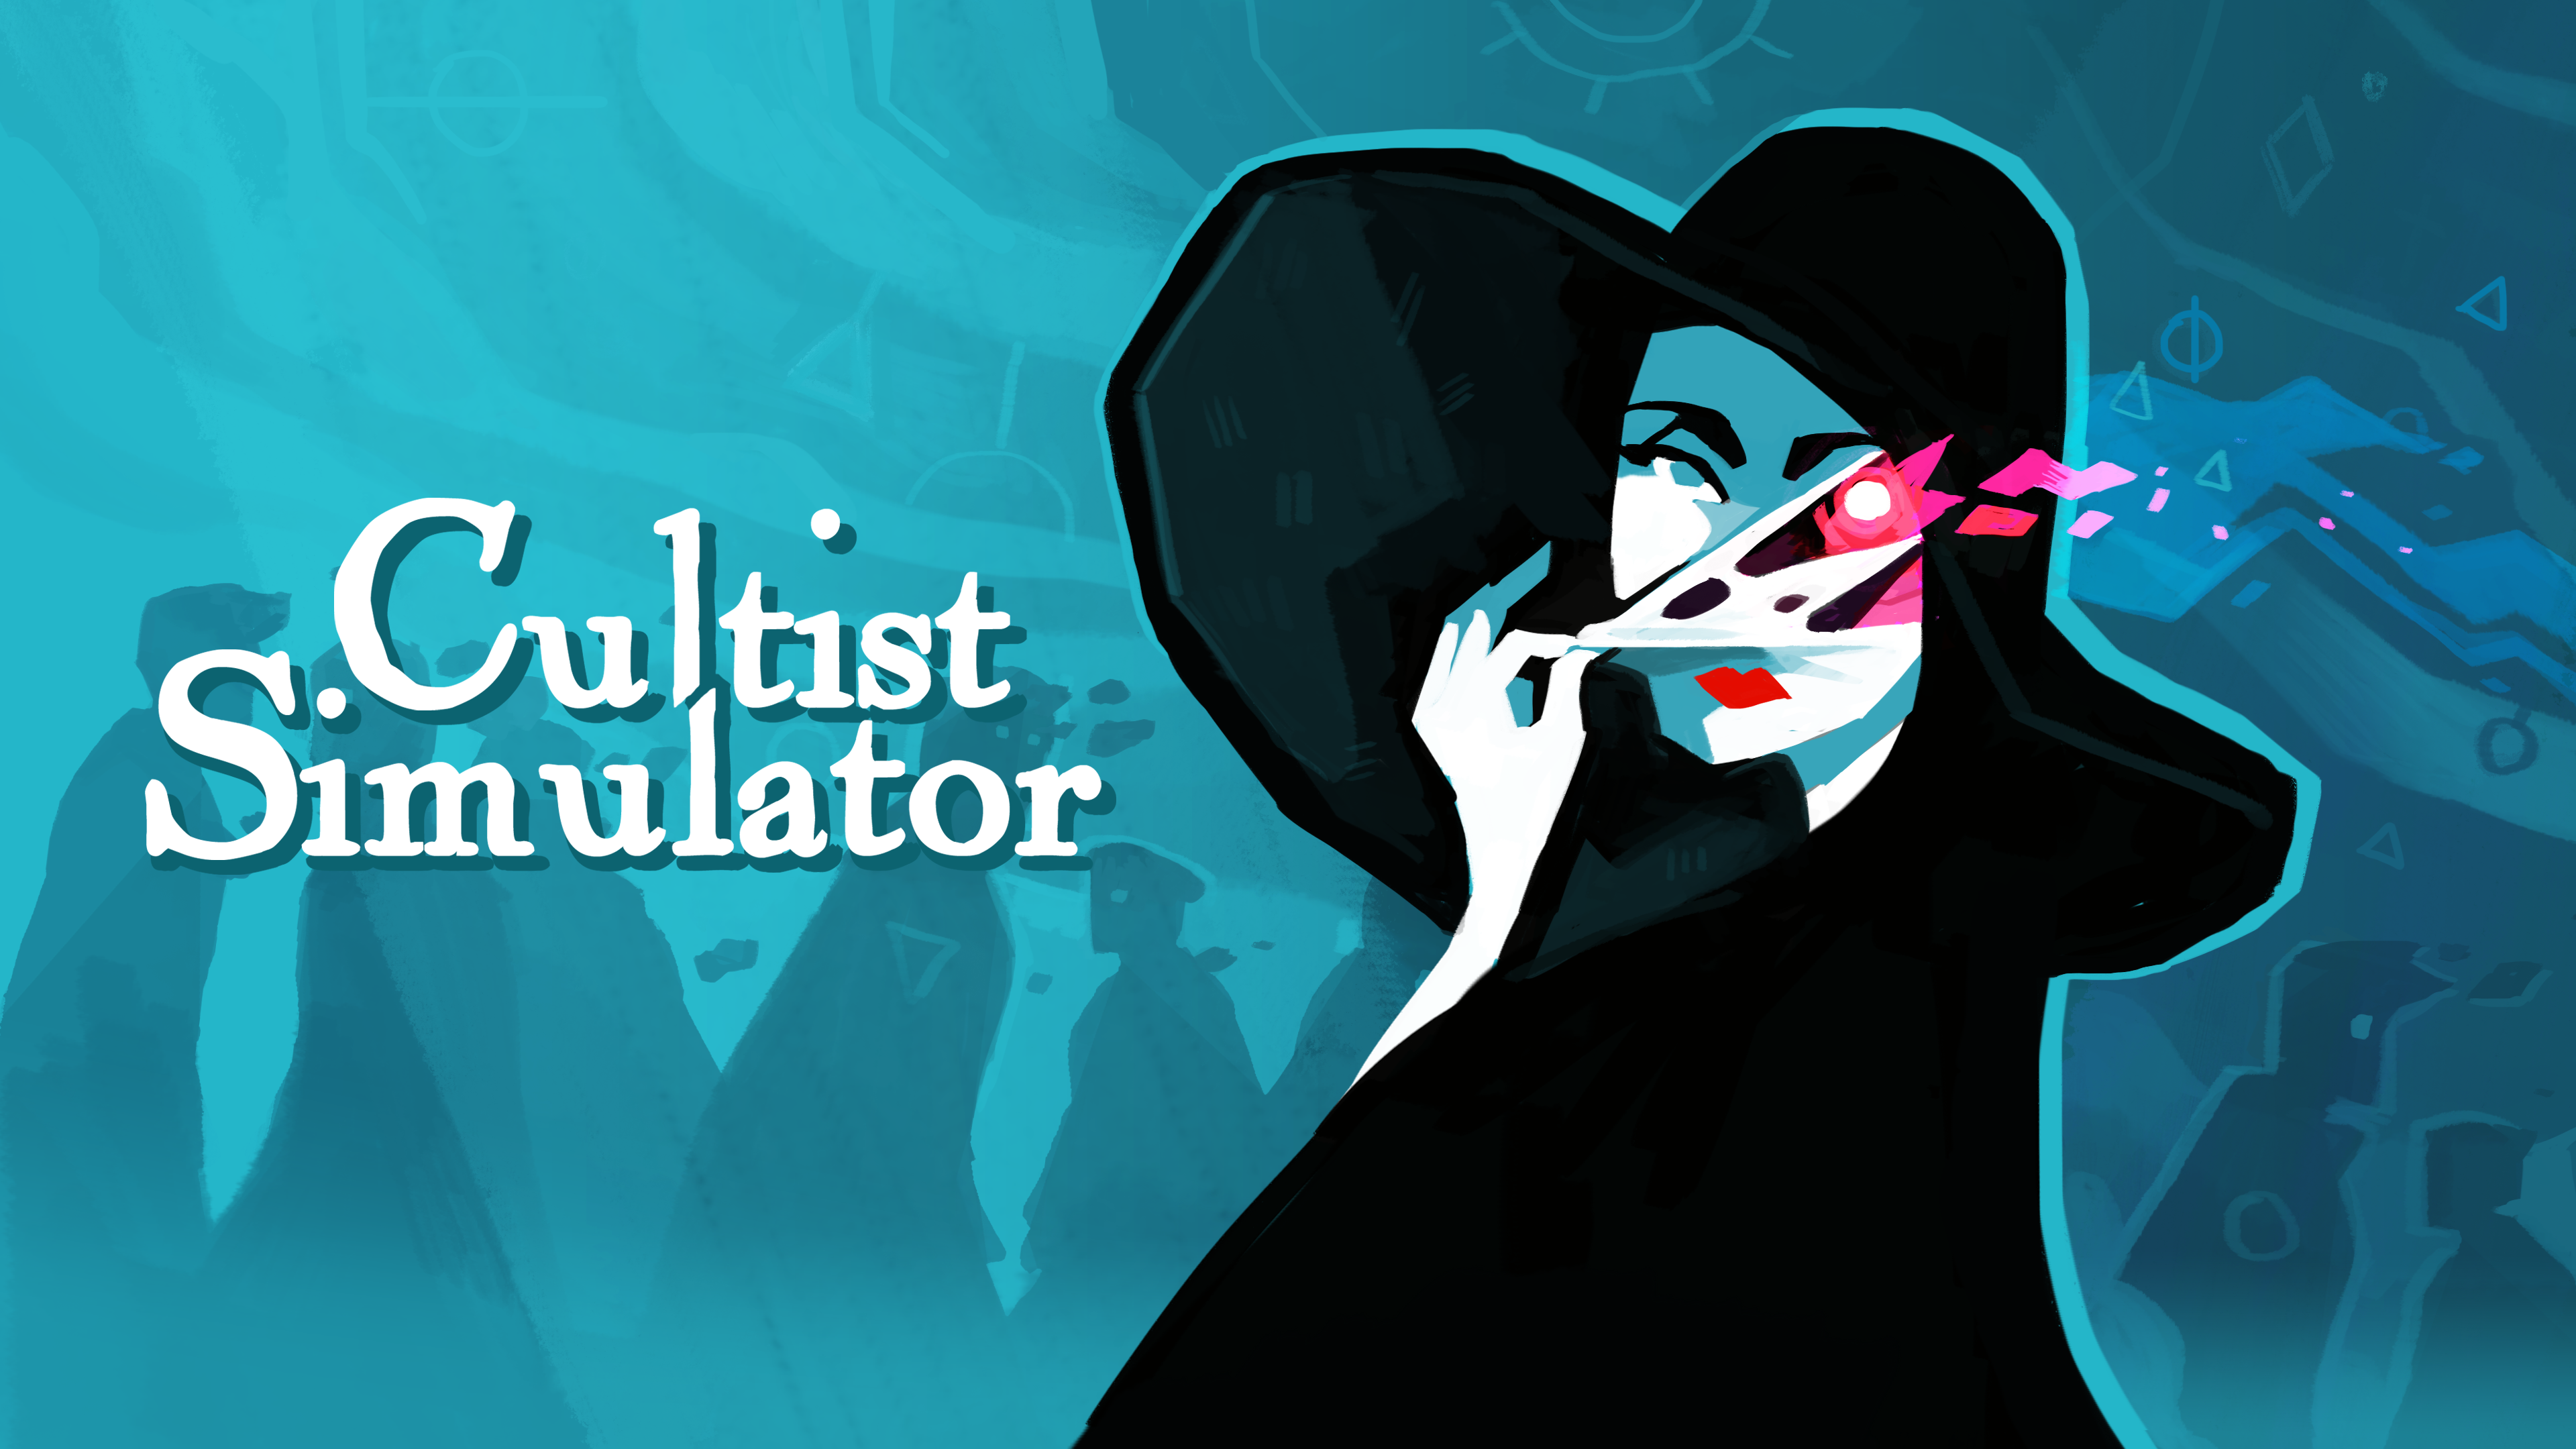 Cultist Simulator's DLCs The Priest and The Ghoul are now available for iOS and Android